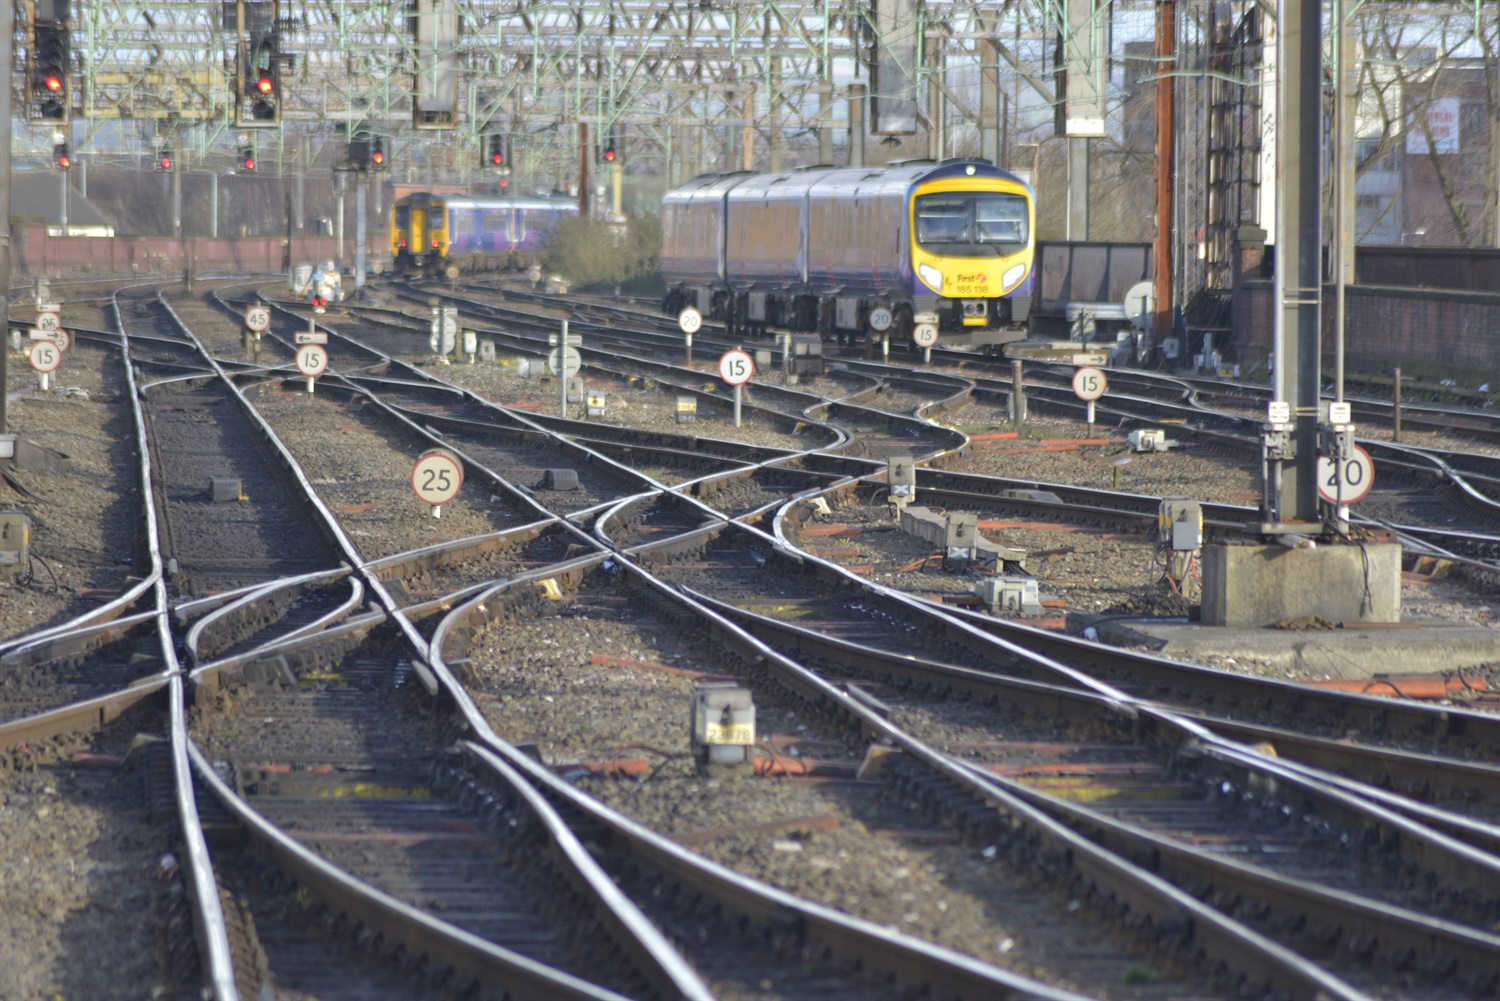 Digital rail and new lines 'must not be mutually exclusive' in TransPennine route